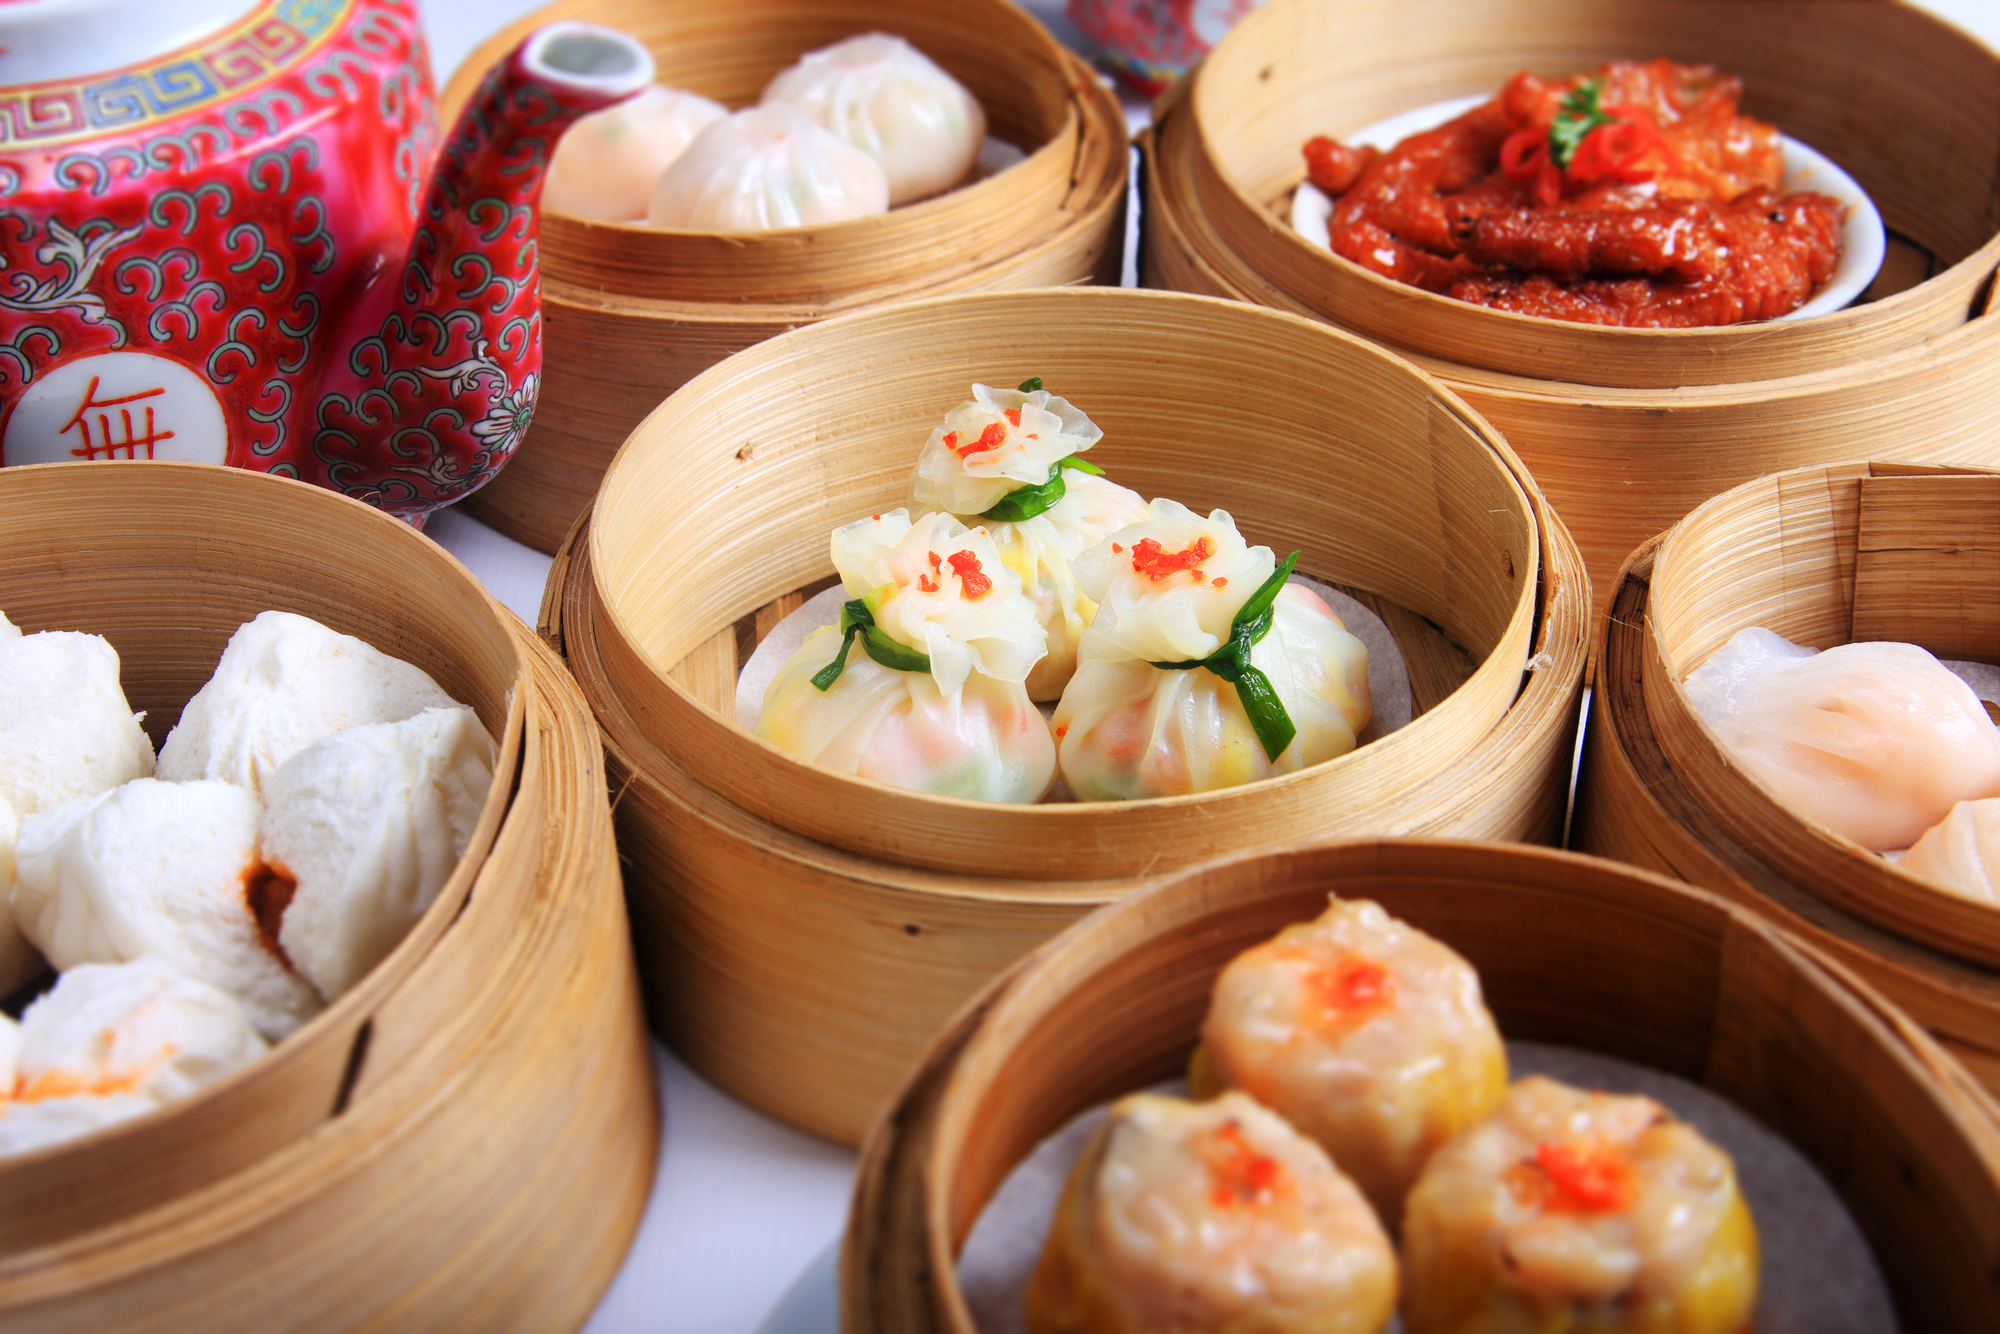 Dim Sum - part of the delicious food to be had